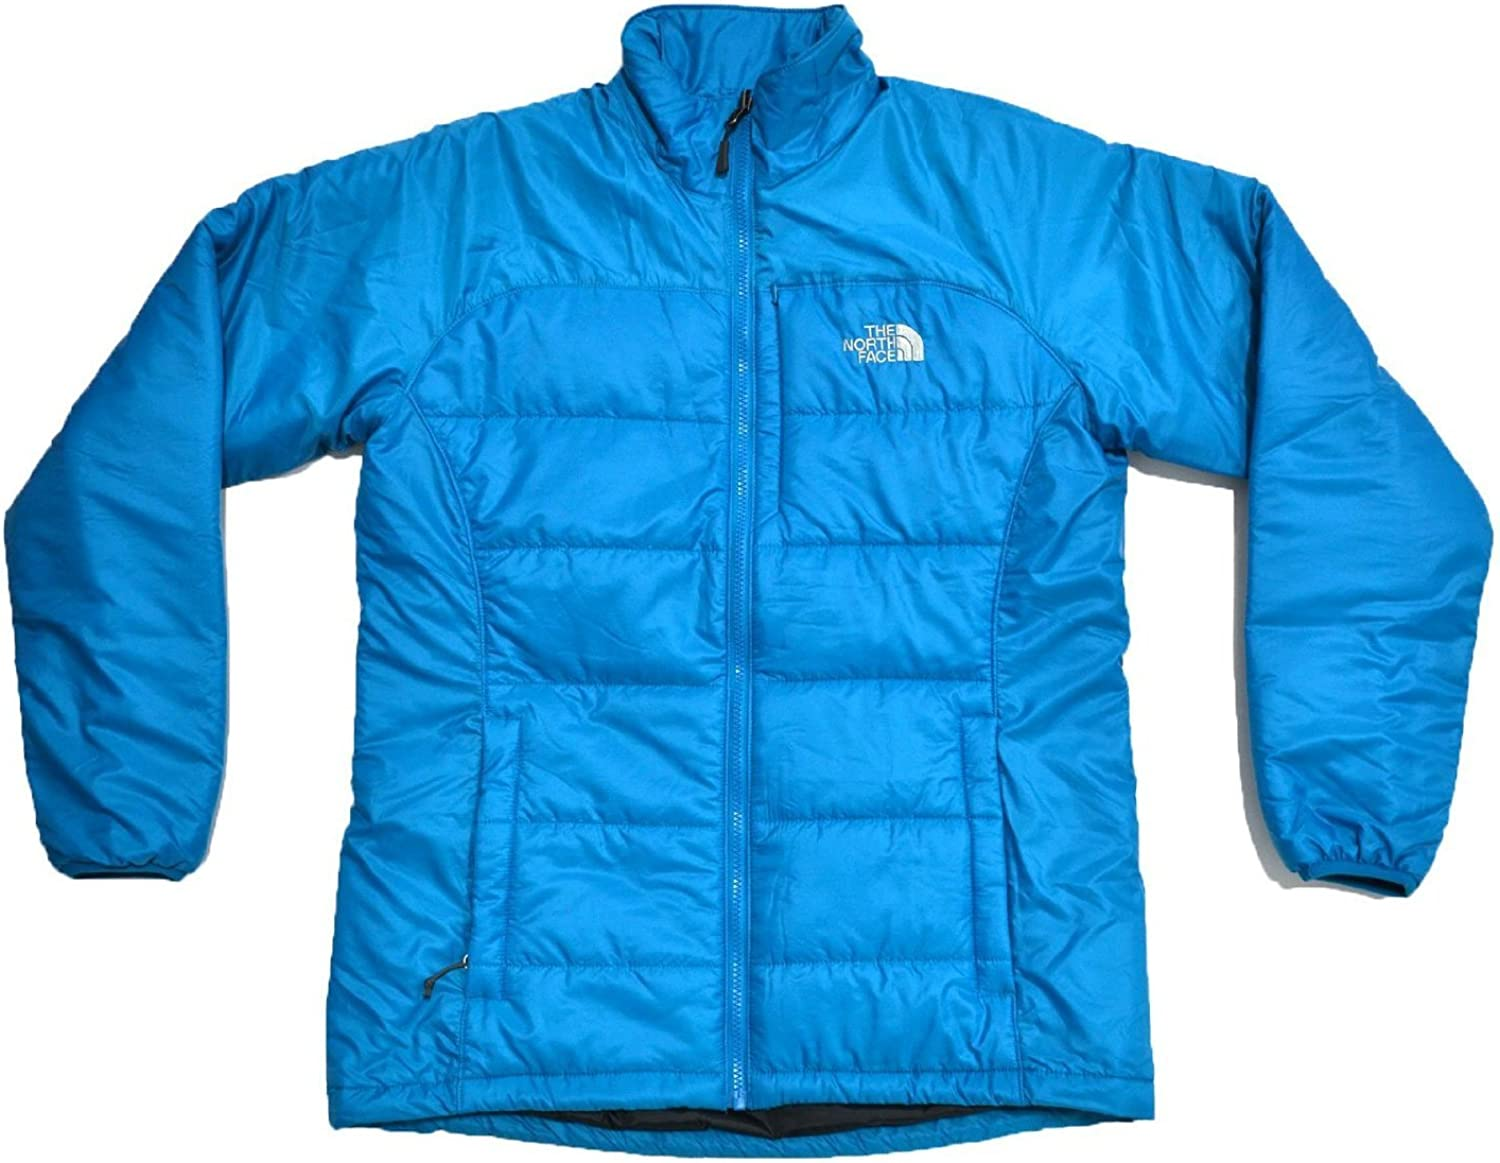 THE NORTH FACE Dentelles Womens Puffer Jacket Brilliant bluee